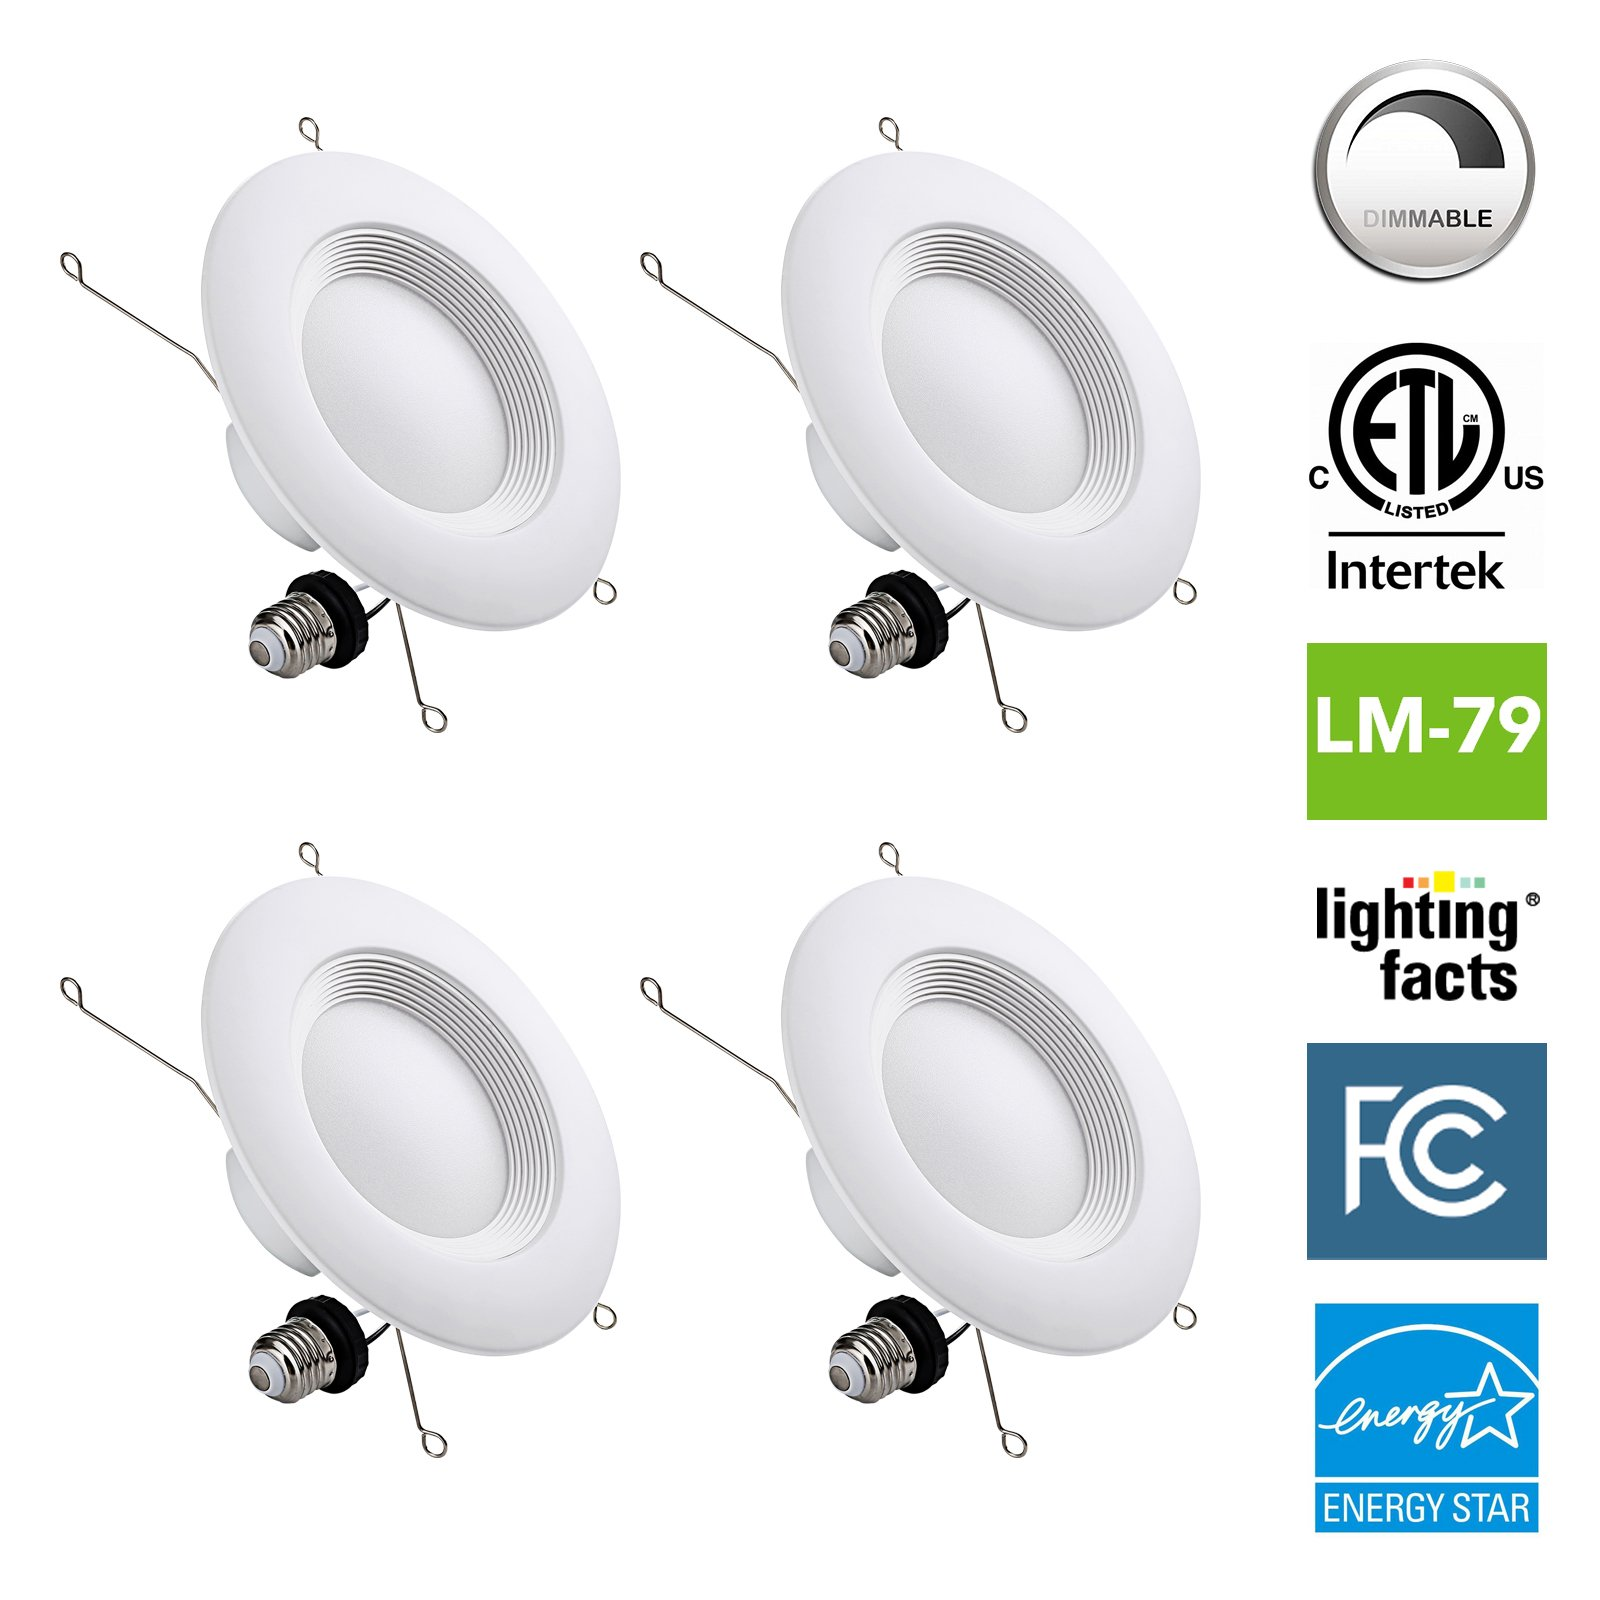 NASUN 5/6 Inch Dimmable LED Downlight, ENERGY STAR, ETL, FCC, 12W, CRI90+, Recessed Retrofit Downlight Lighting Fixture - (Pack of 4), 5 Year Warranty